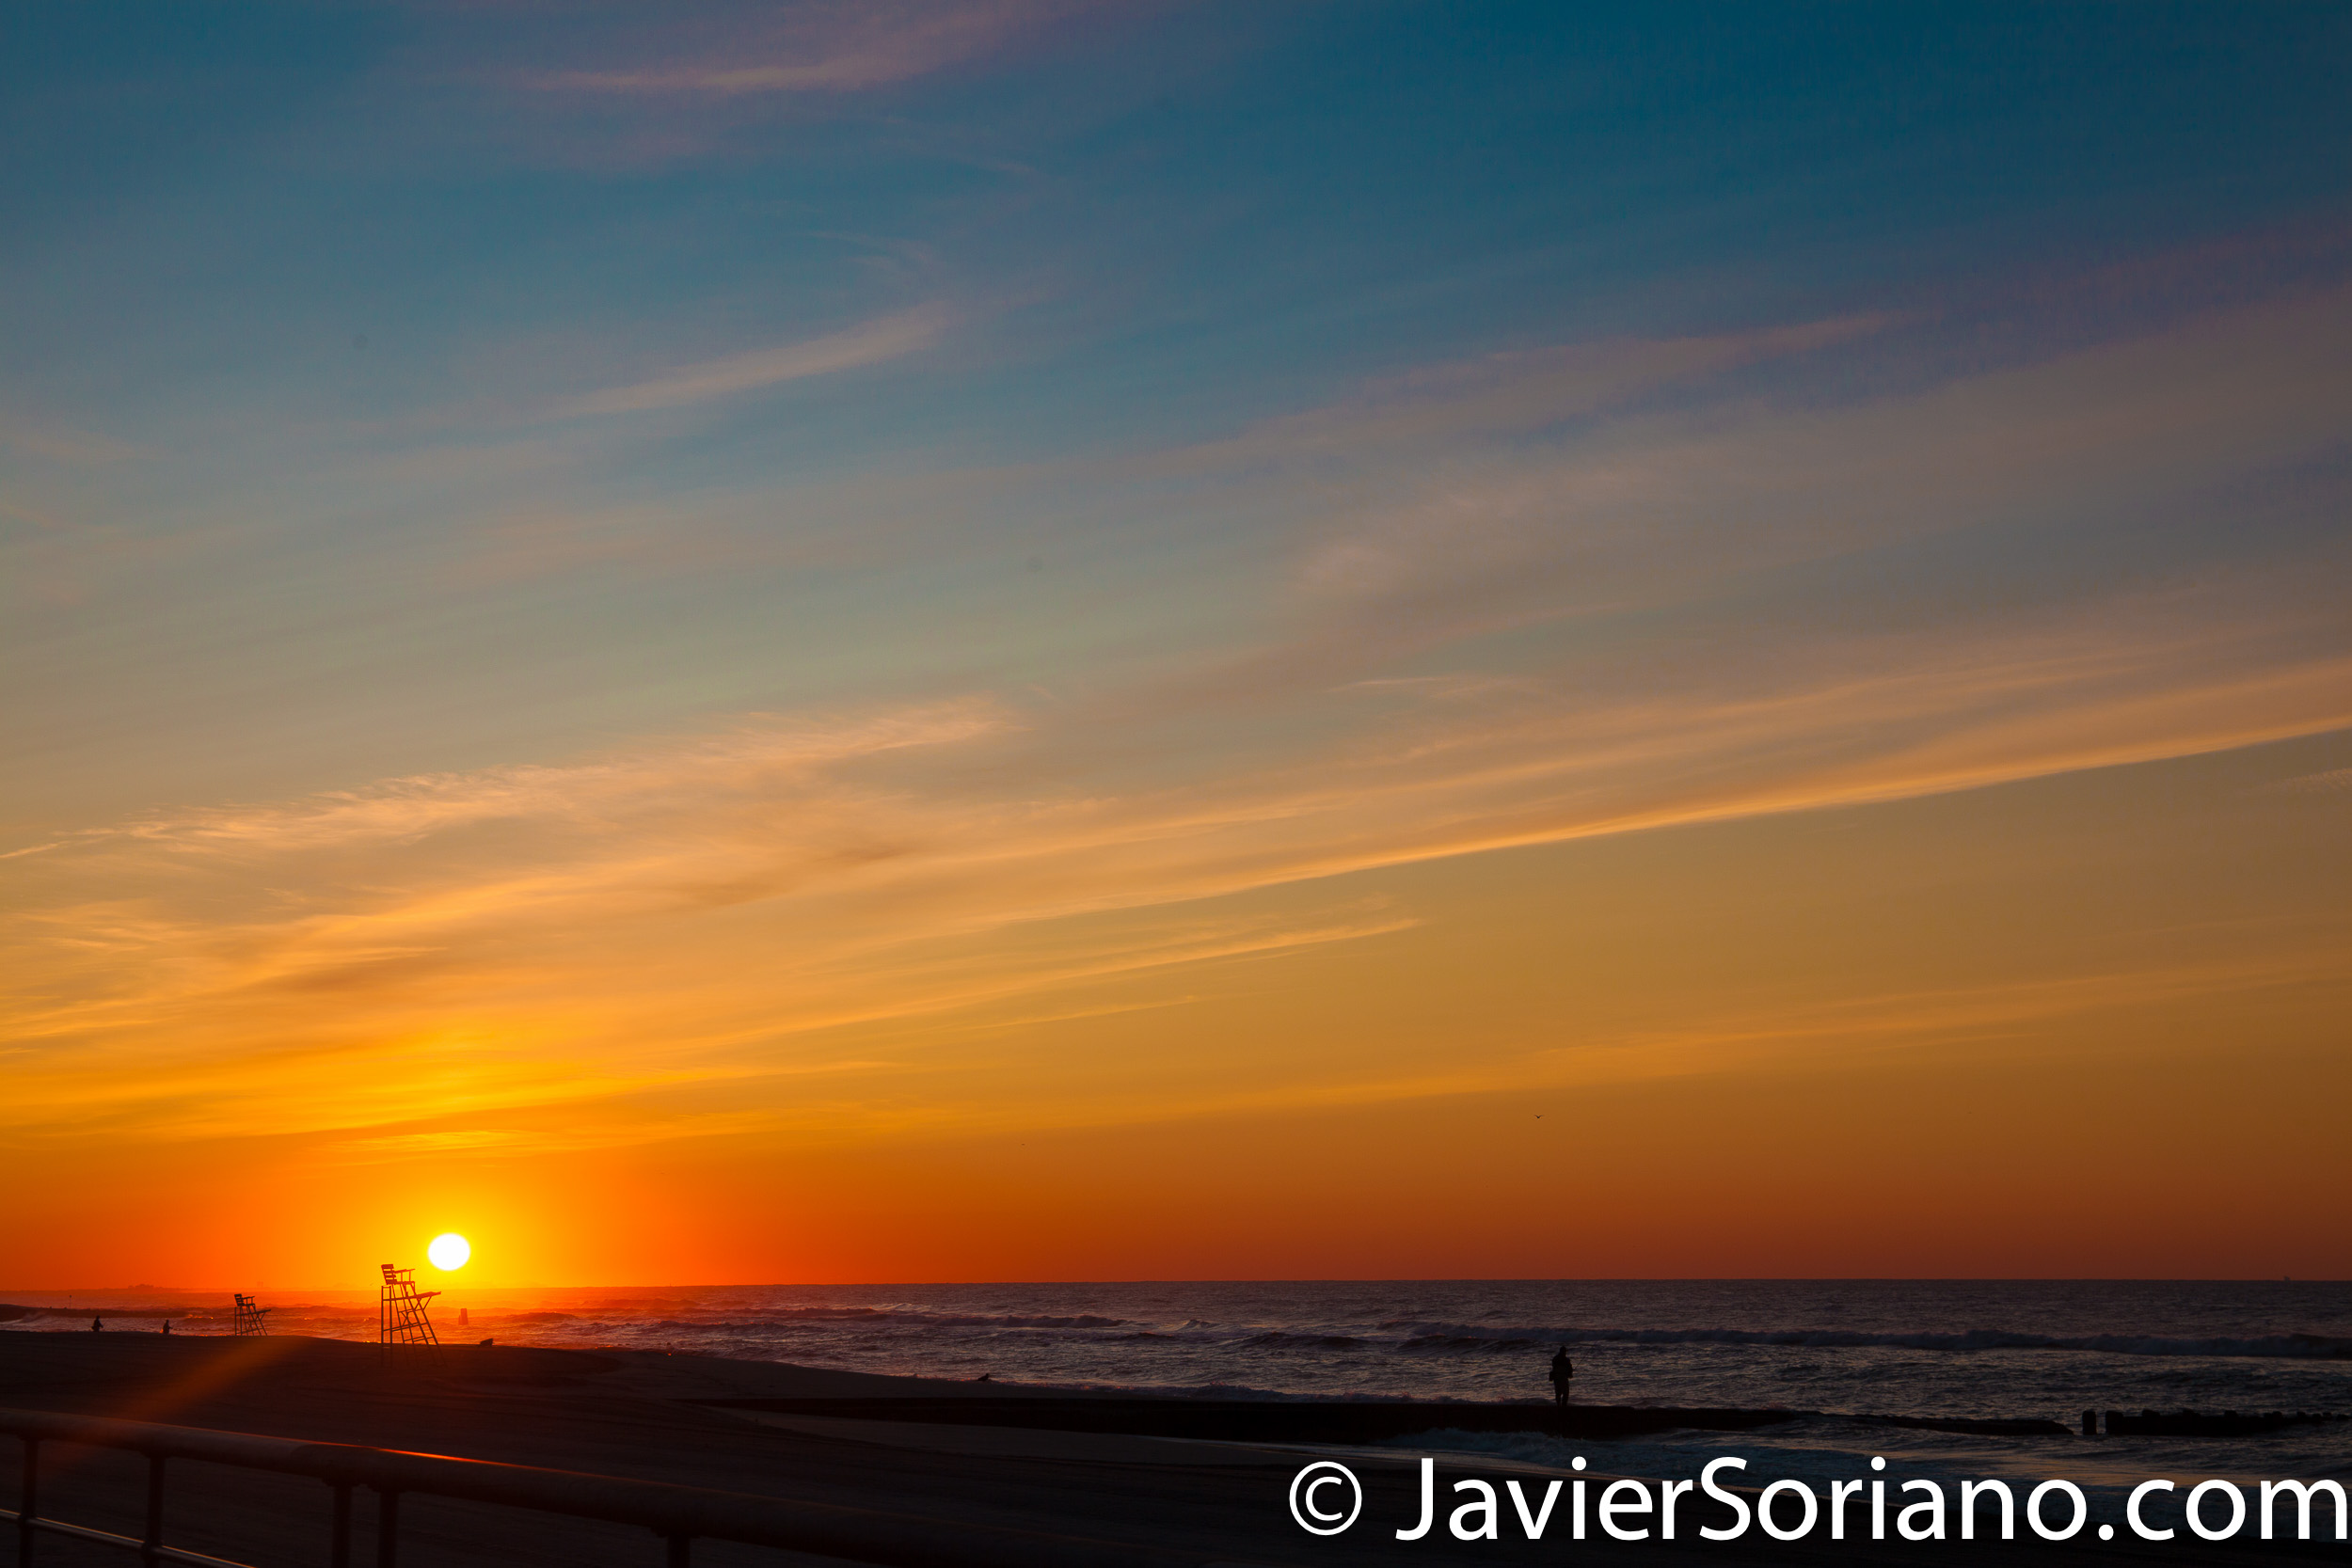 9/8/2017 - Sunrise. Atlantic Ocean. New York City. Amanecer. Océano Atlántico. Ciudad de Nueva York. Photo by Javier Soriano/www.JavierSoriano.com